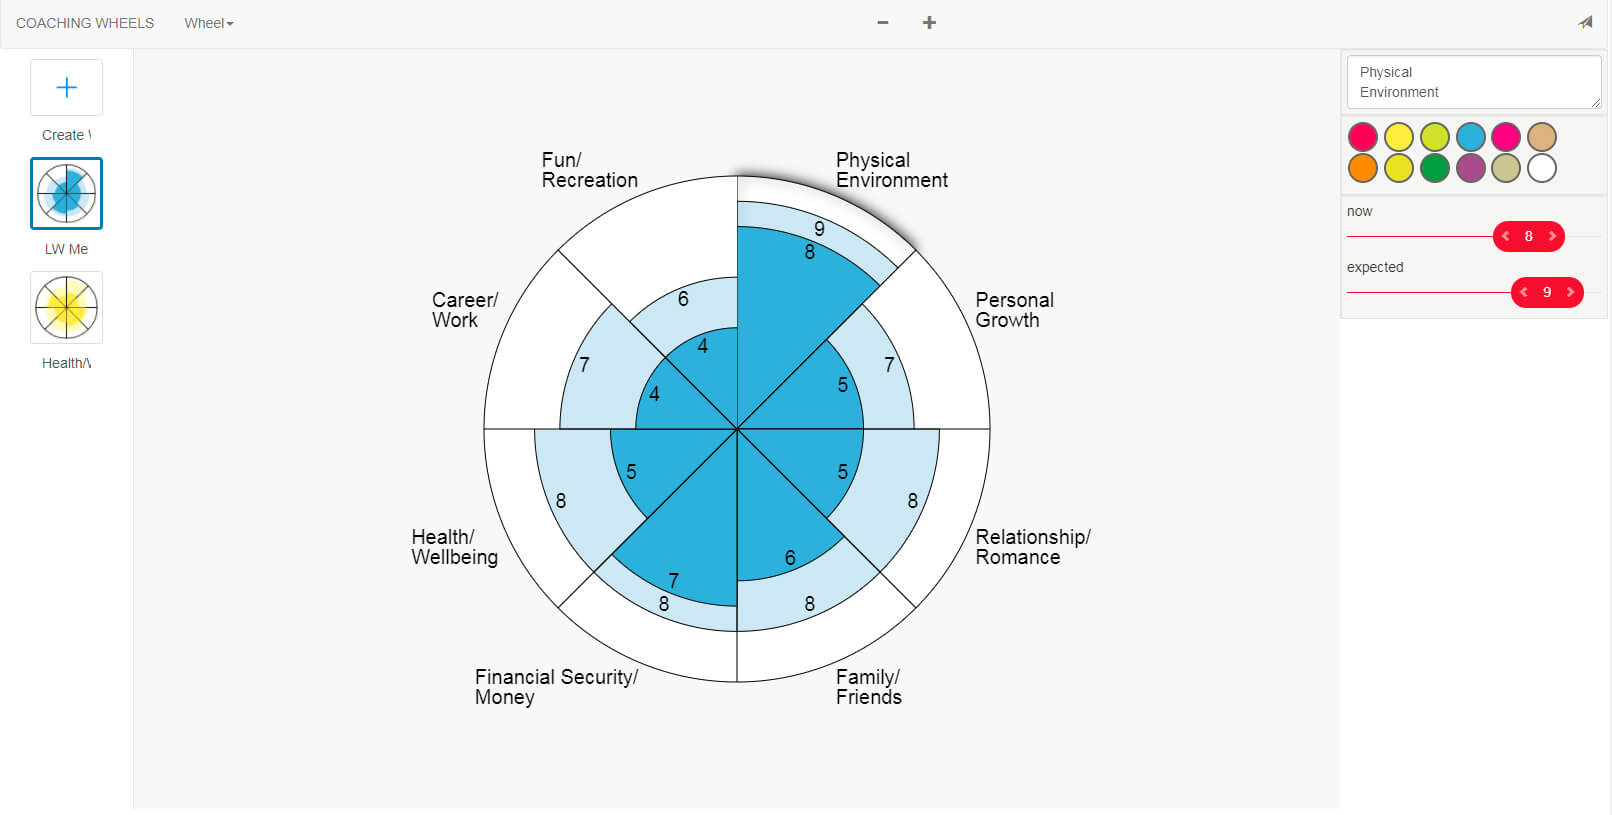 Coaching Tools with regard to Wheel Of Life Template Blank